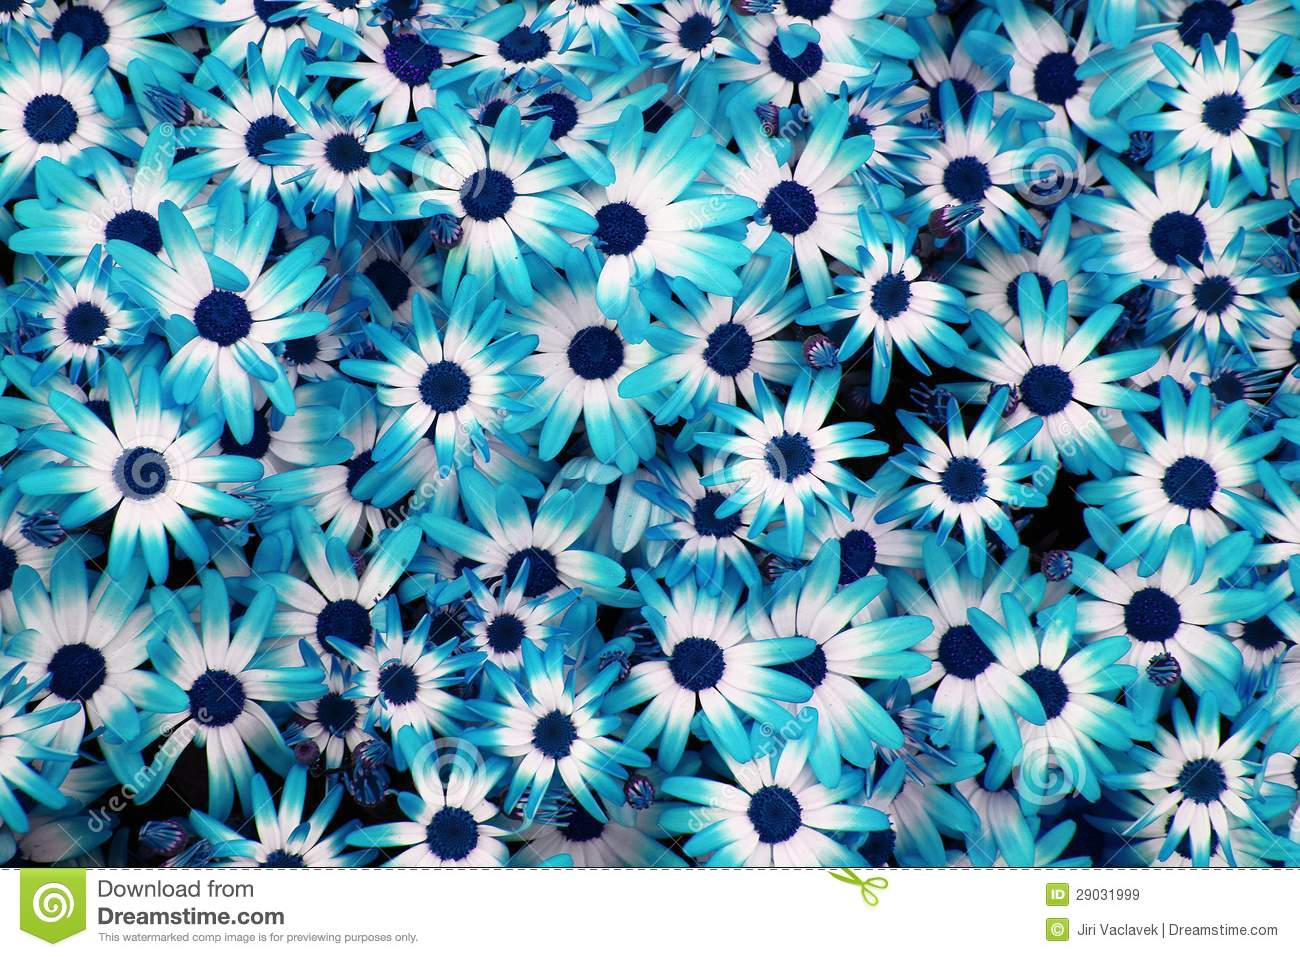 Eletragesi Blue And White Flowers Tumblr Images